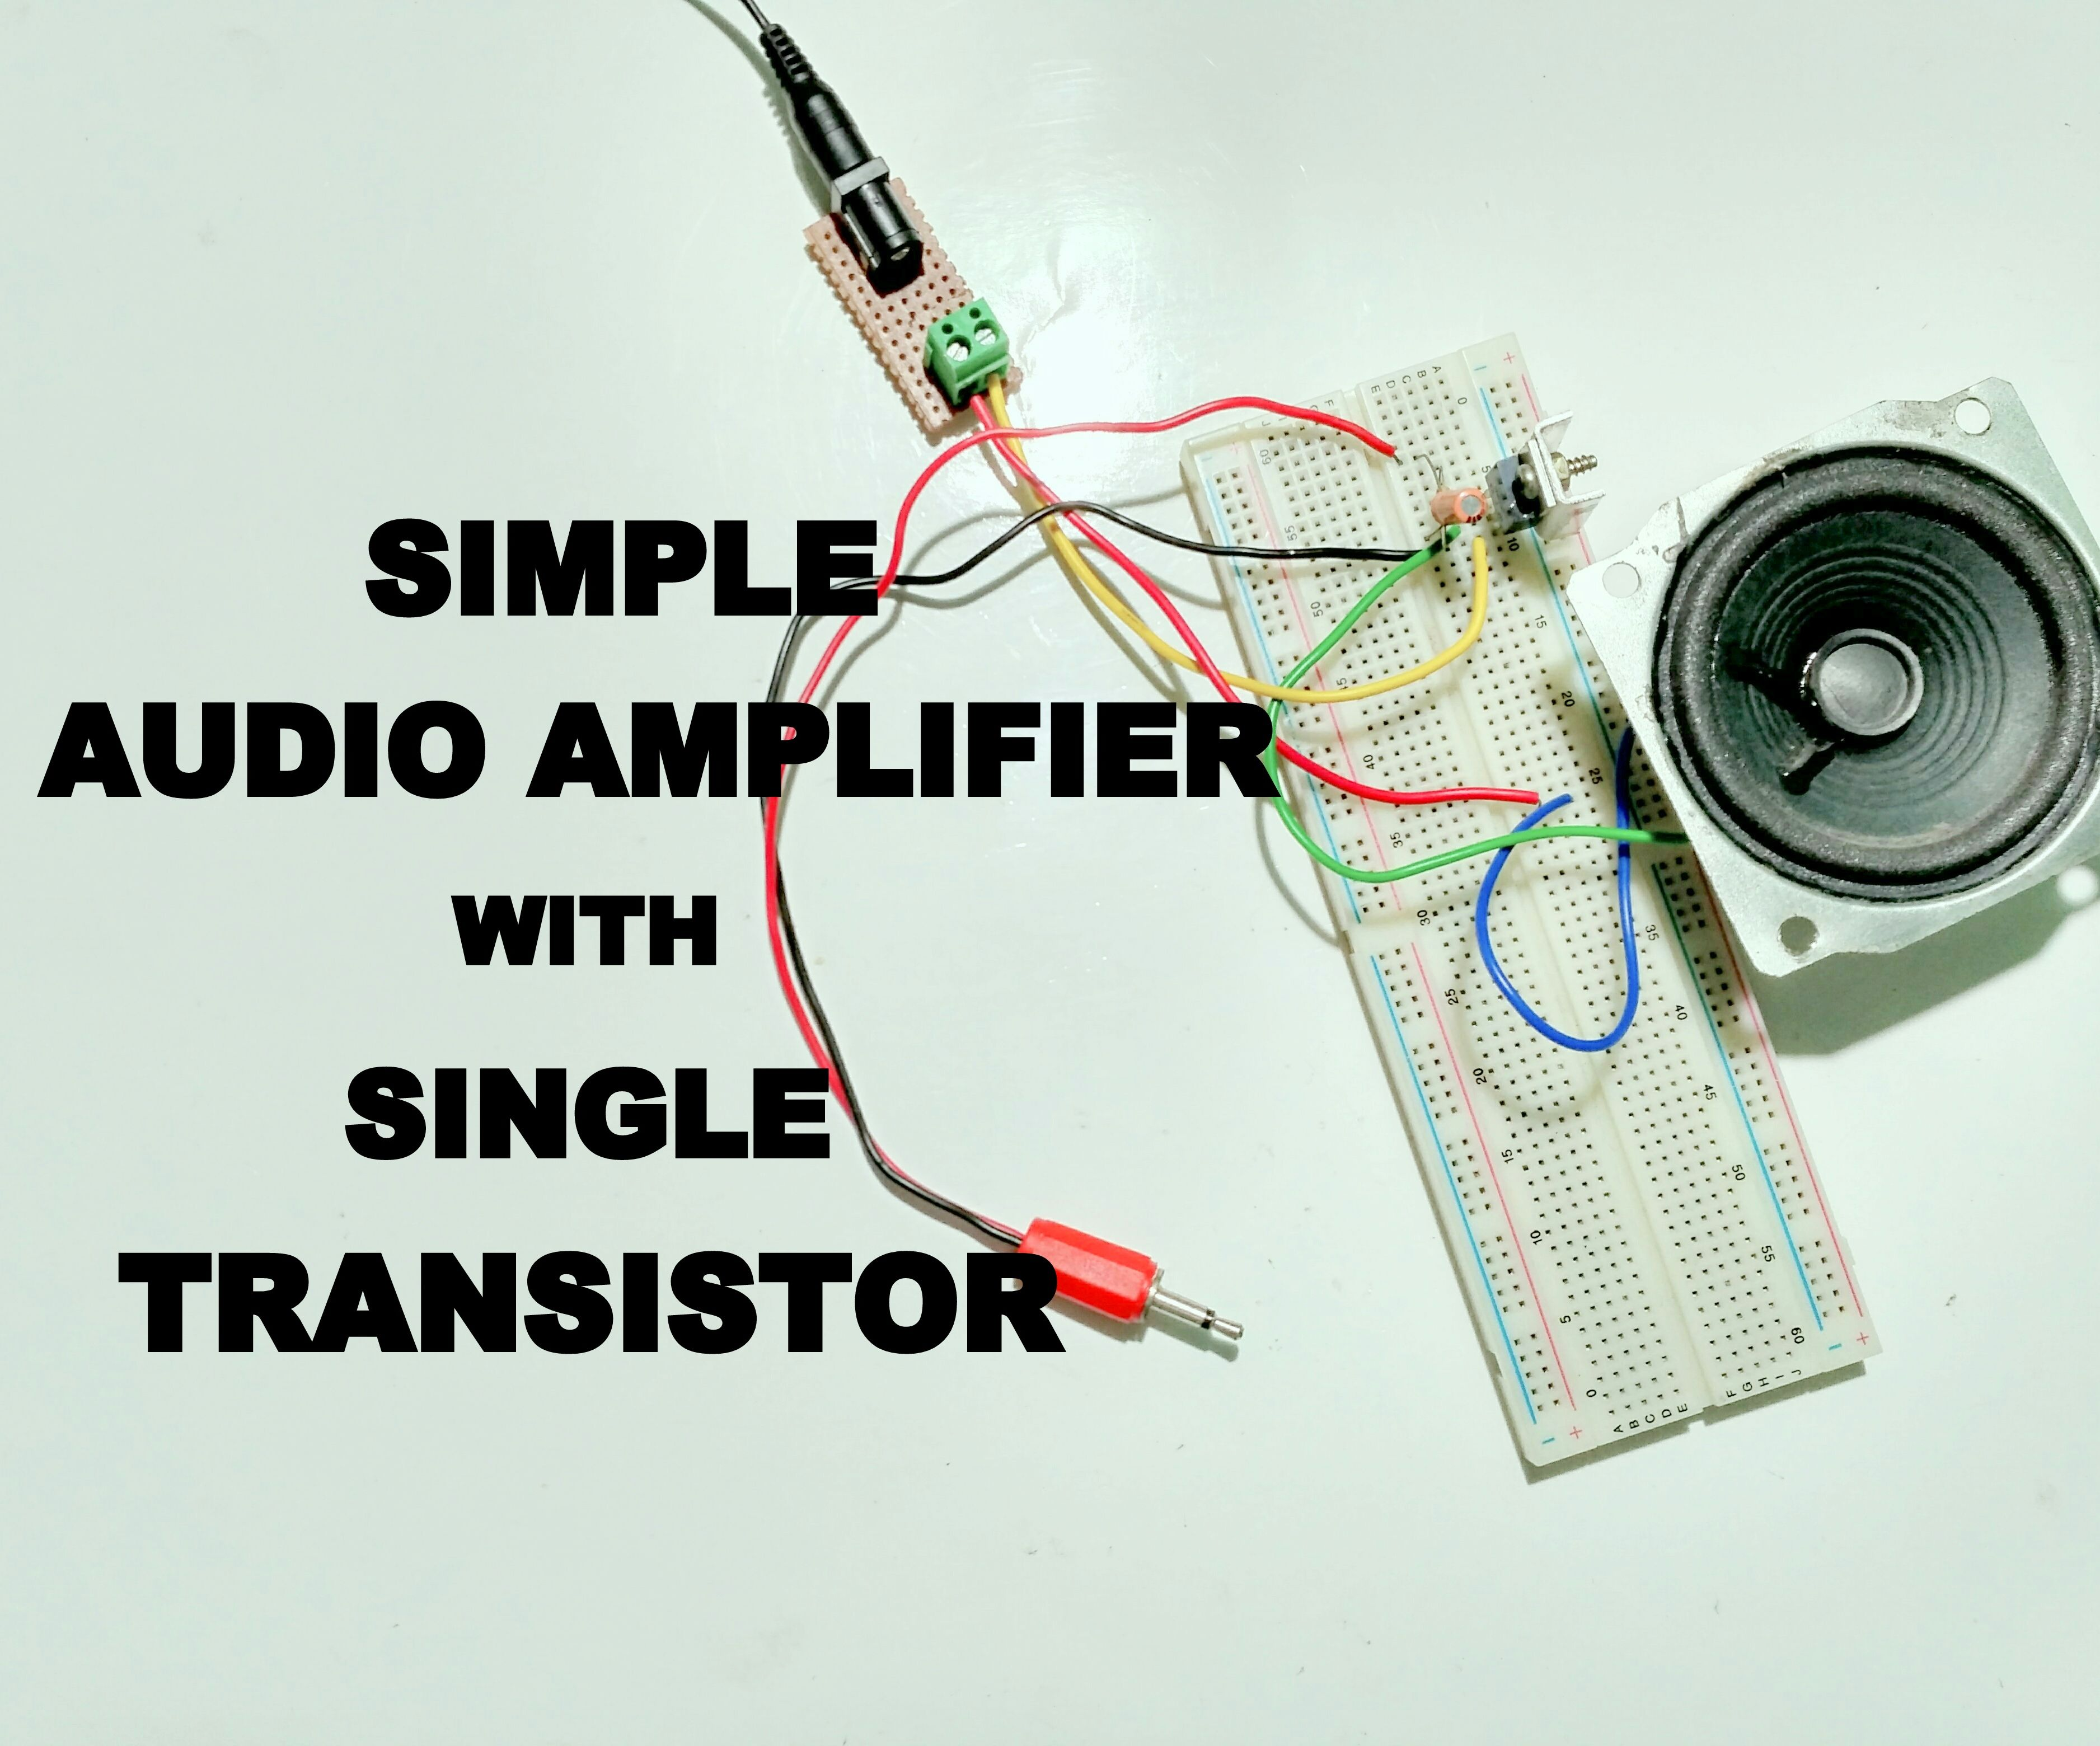 Transistor Phone Jack Wiring Diagram Car Diagrams Explained How To Wire A Simple Audio Amplifier Using Single 3 Steps With Pictures Rh Instructables Com Colors Old Telephone